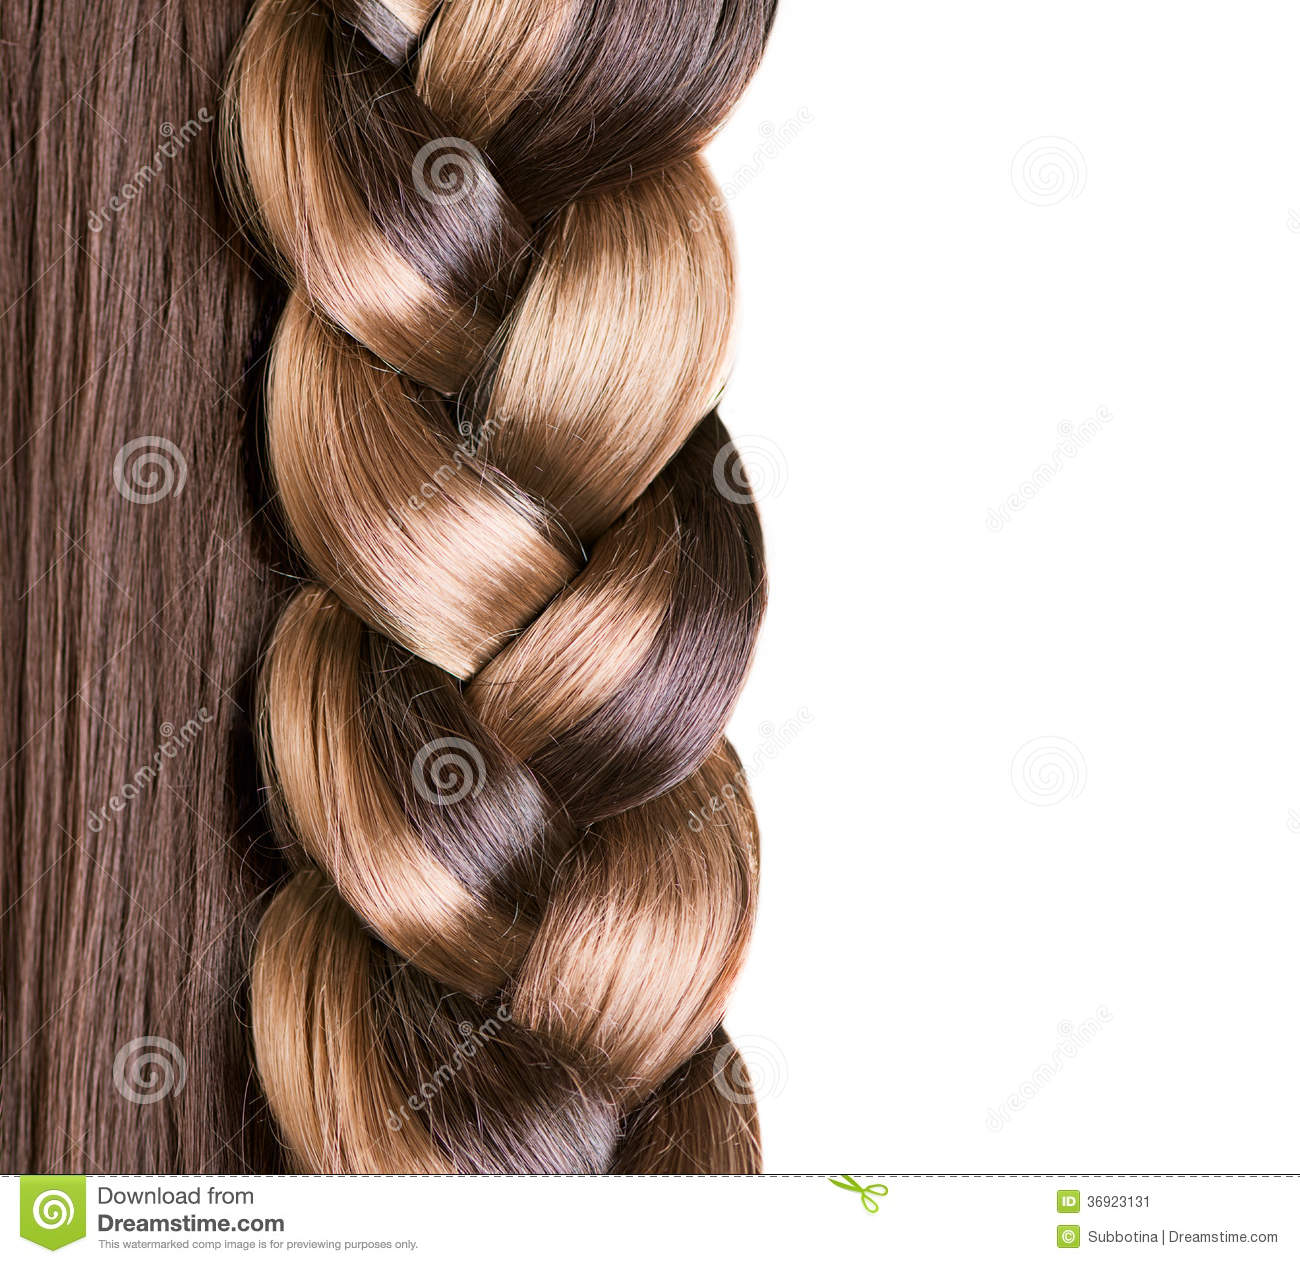 Braid Hairstyle Stock Image Image 36923131